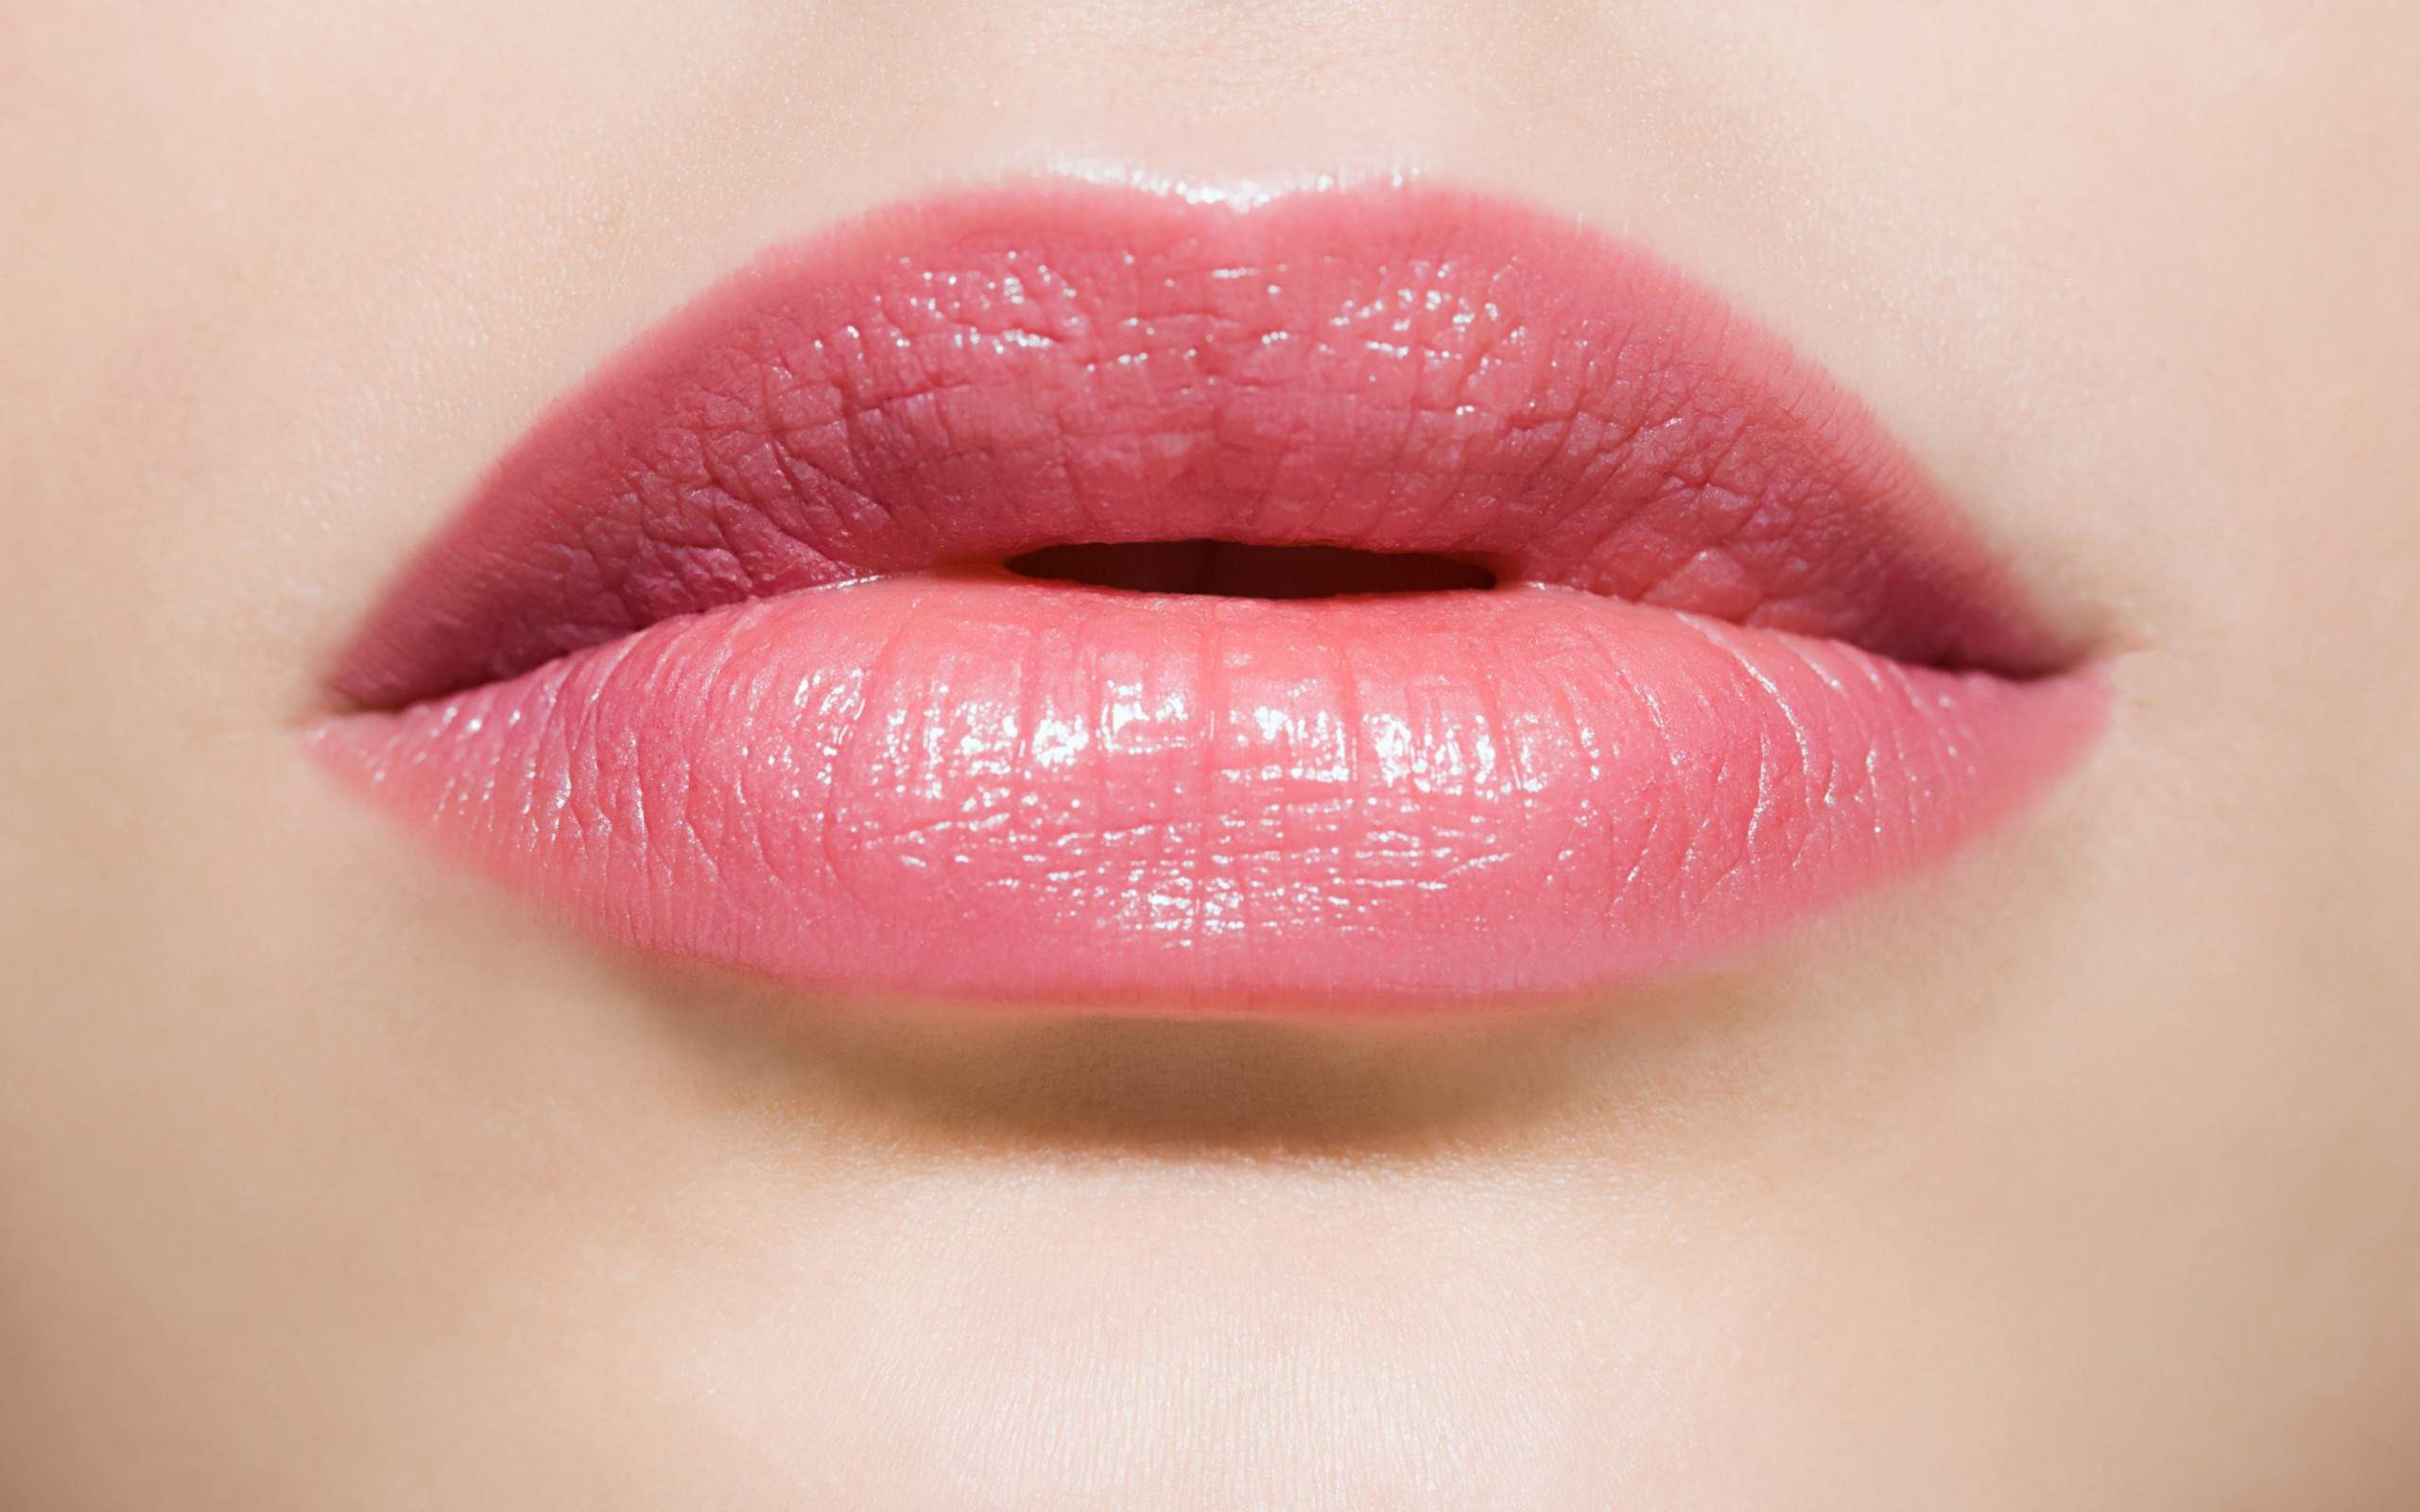 6 Ways To Make Your Lips Pink NATURALLY In 3 Weeks